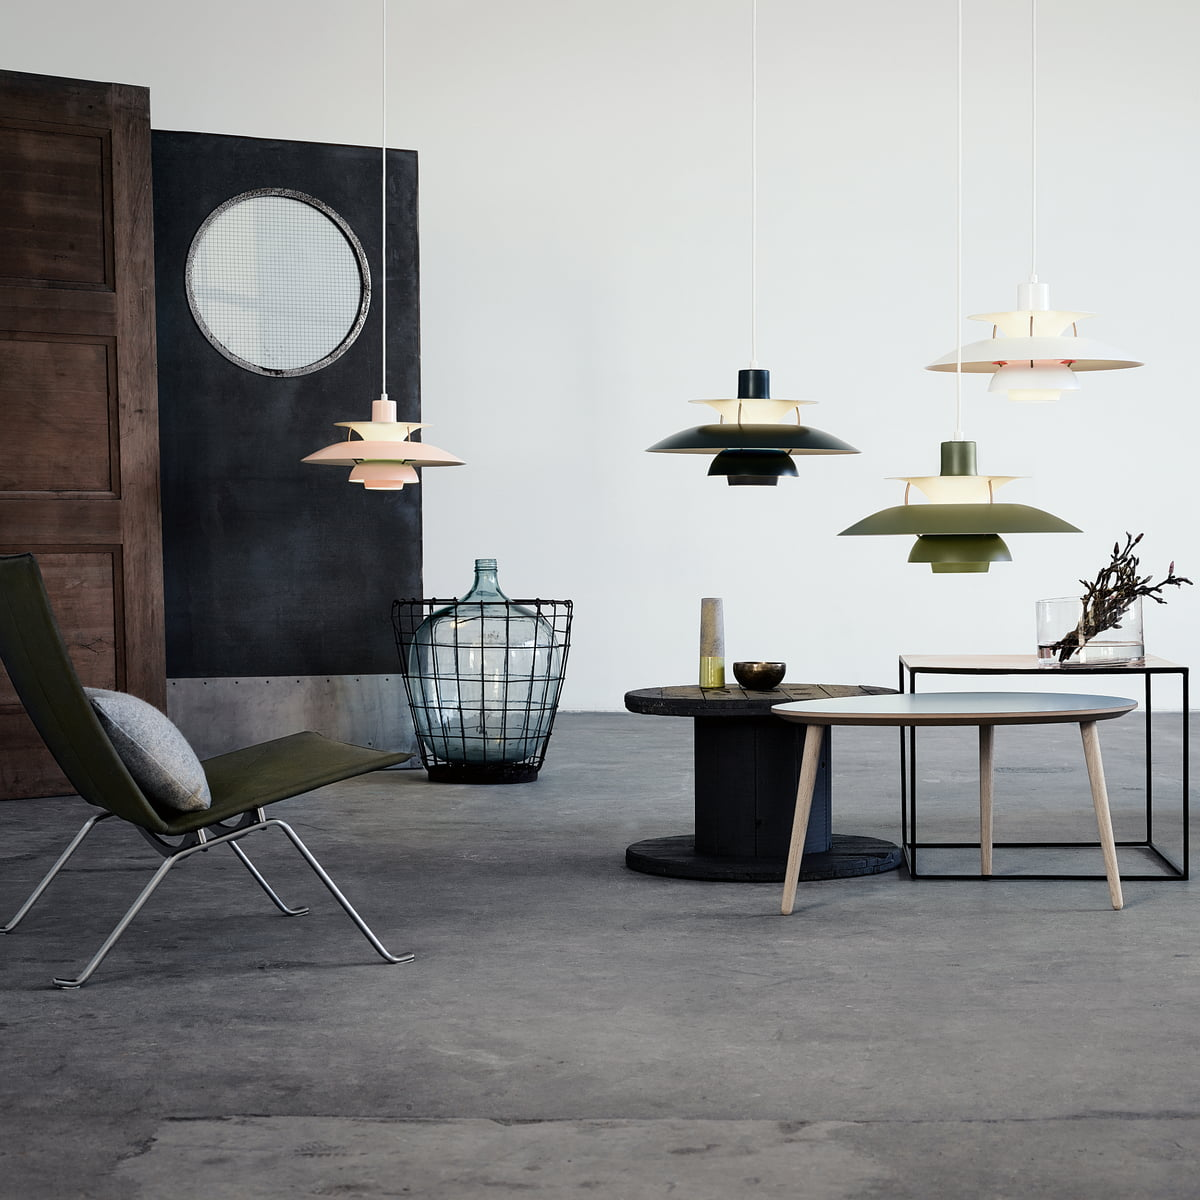 Ph 5 Louis Poulsen Ph 5 Pendant Lights